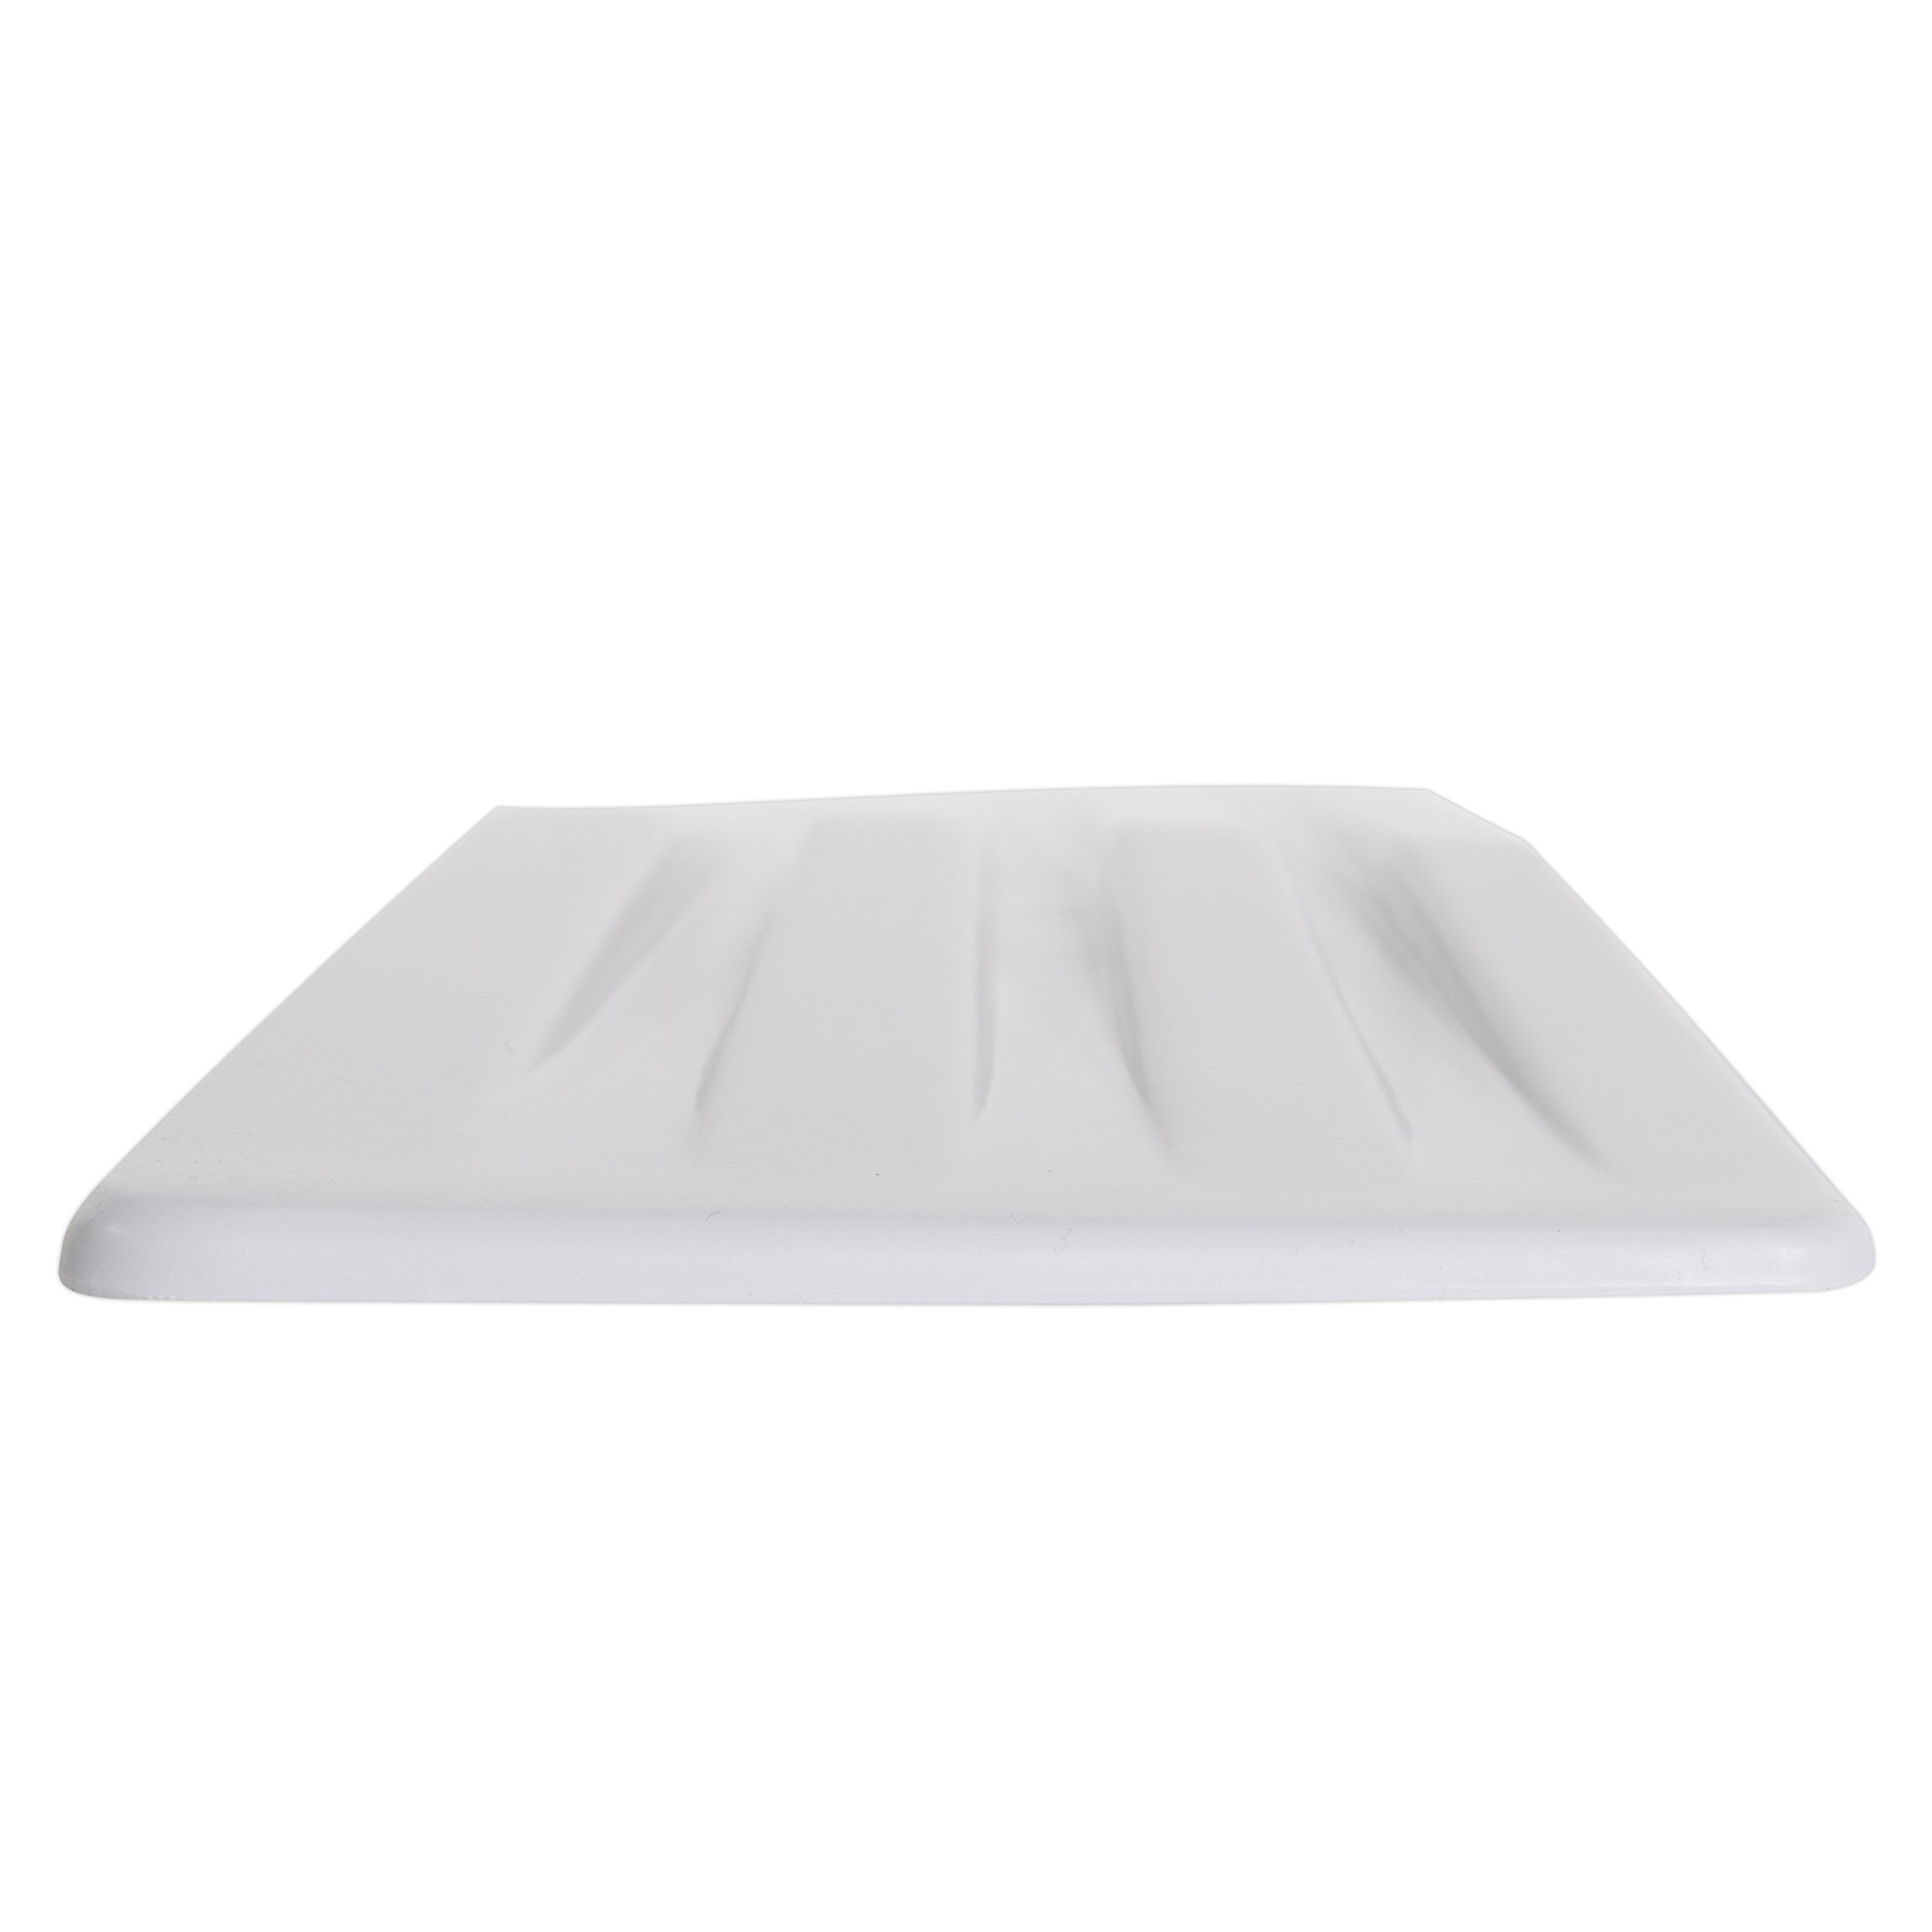 Molded Transfer Slide Board, Wheelchair Transfer Board, Medical Patient Aid for Limited Mobility & Recovery, White by PCP